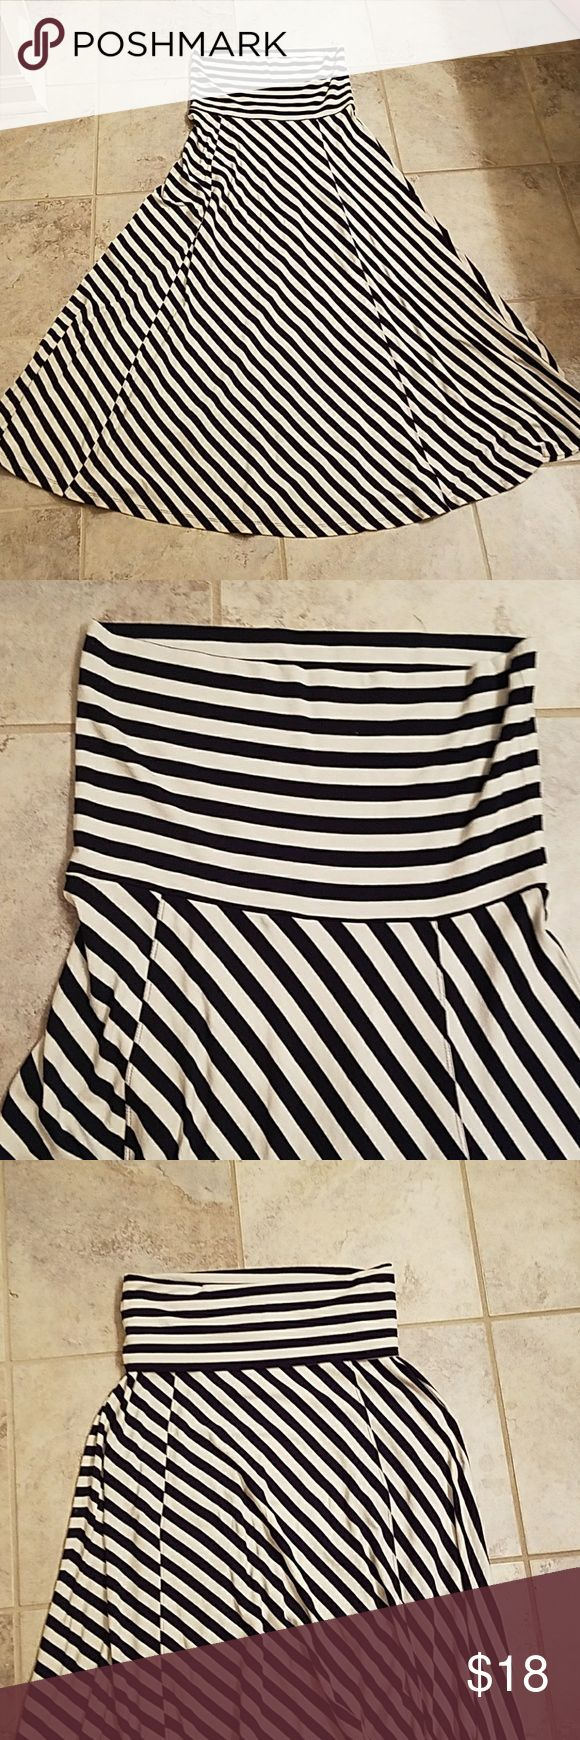 Maxi Skirt/dress Gap navy blue and white stripped maxi skirt or dress. Top part can be folded to wear as a skirt, or reguar to be worn as a tube top dress. Slinky material, has stretch! Perfect like new condition, 95% Viacom and 5% spandex/elastane GAP Skirts Maxi